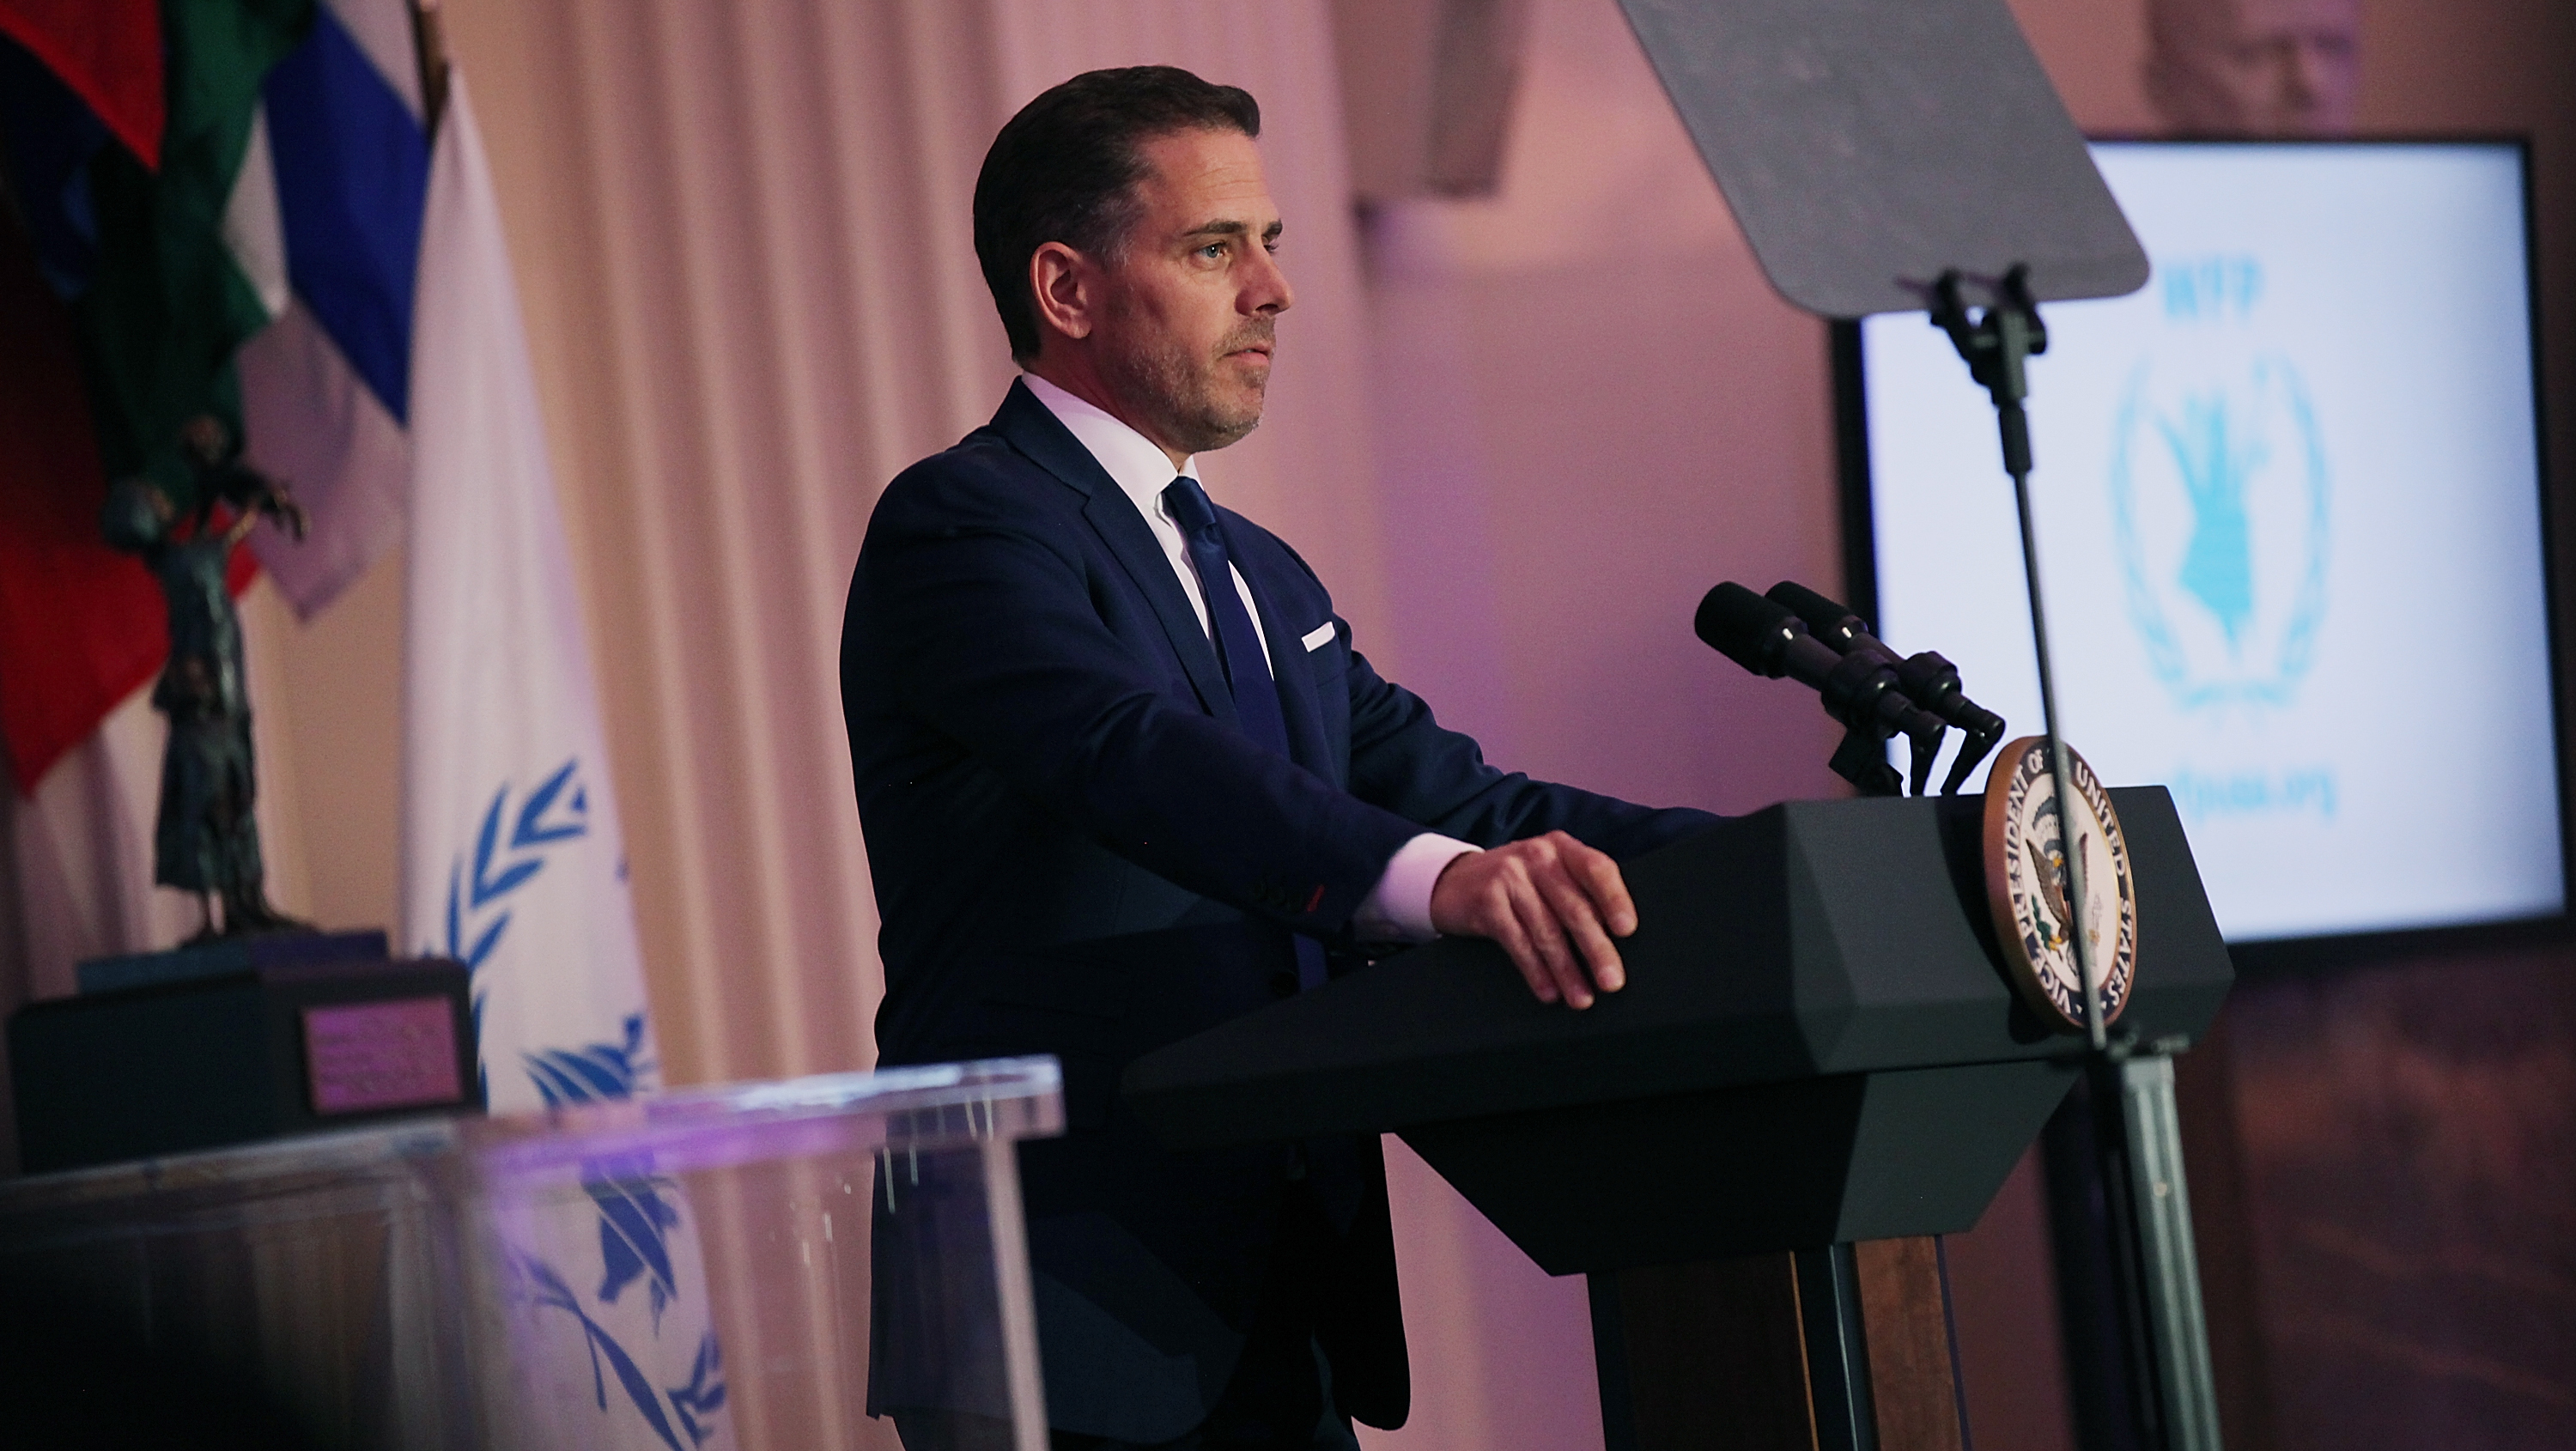 Hunter Biden Says Ukrainian Gas Company Involvement Was 'Poor Judgment'